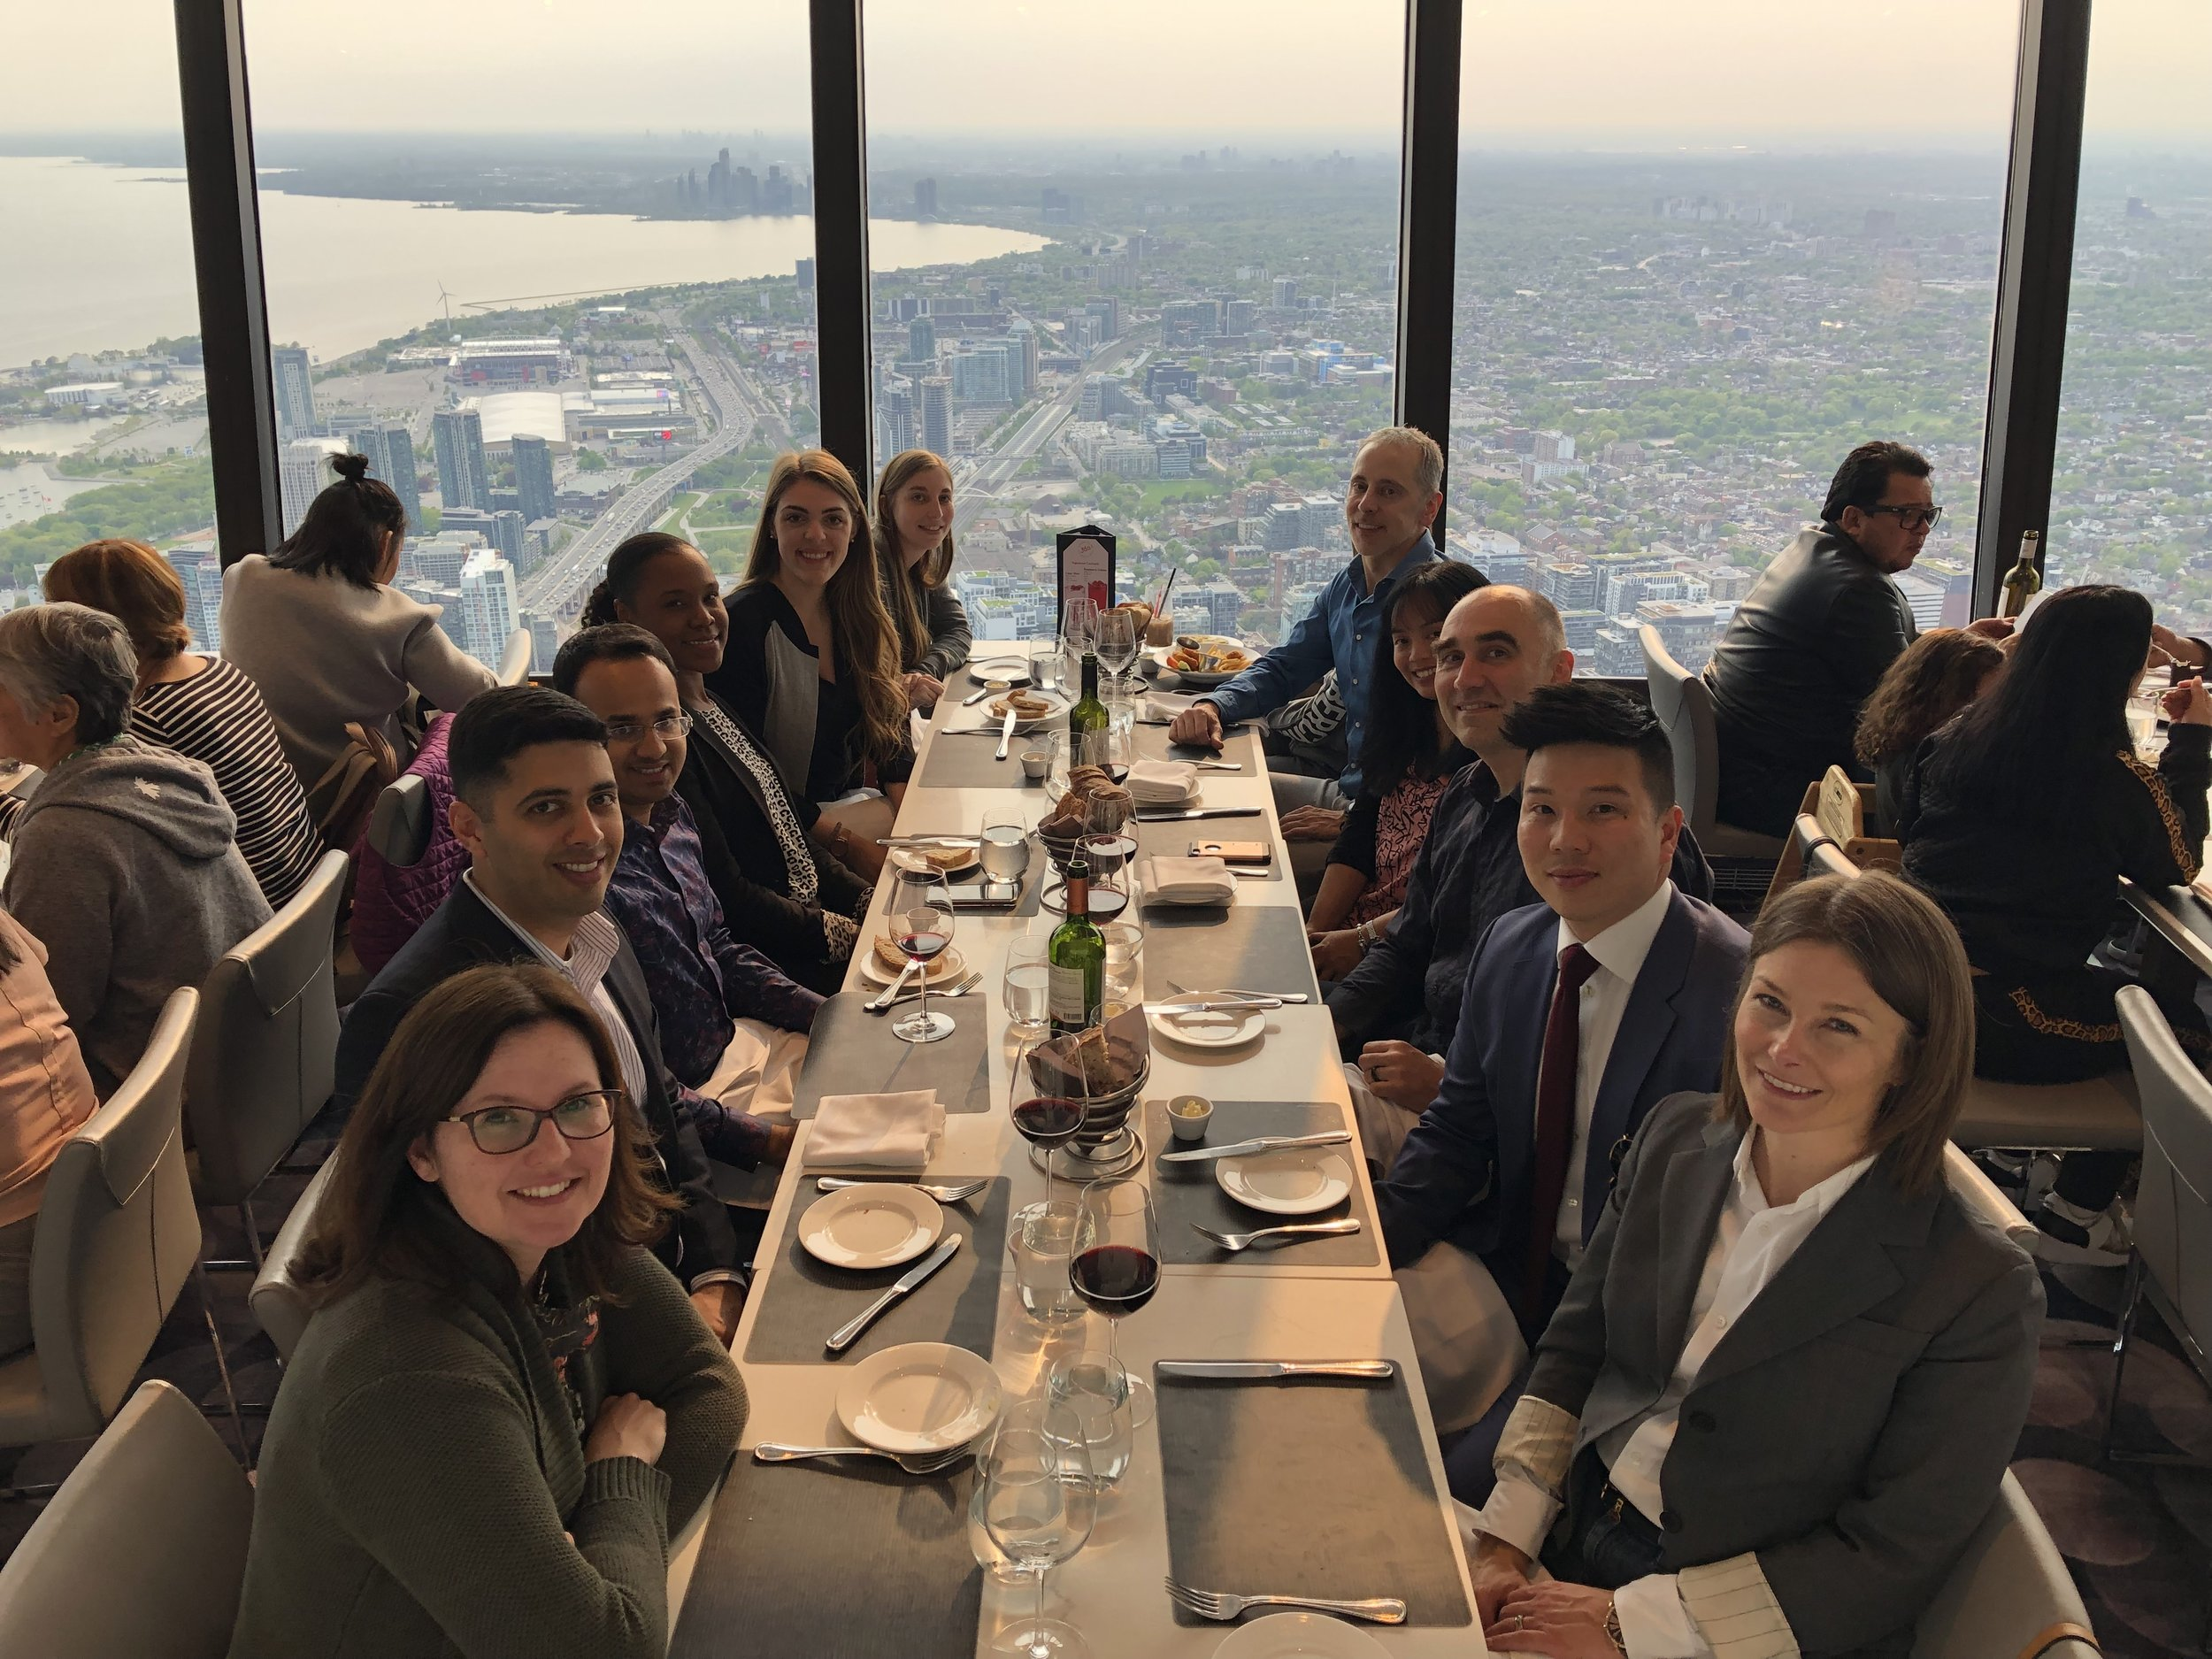 From far left to far right: Christina Cleroux, Summer Student; Coralie Robert, Summer Student; Lathia Stubbs, Associate; Ashwin Krishnan, Articled Clerk; Matt Hack, Articled Clerk; Melanie Young, Partner; Leisa MacIntosh, Partner; Enoch Wu, Associate; Janus Siebrits, Partner; Angeli Swinamer, Partner; Jamie MacGillivray, Founding Partner.